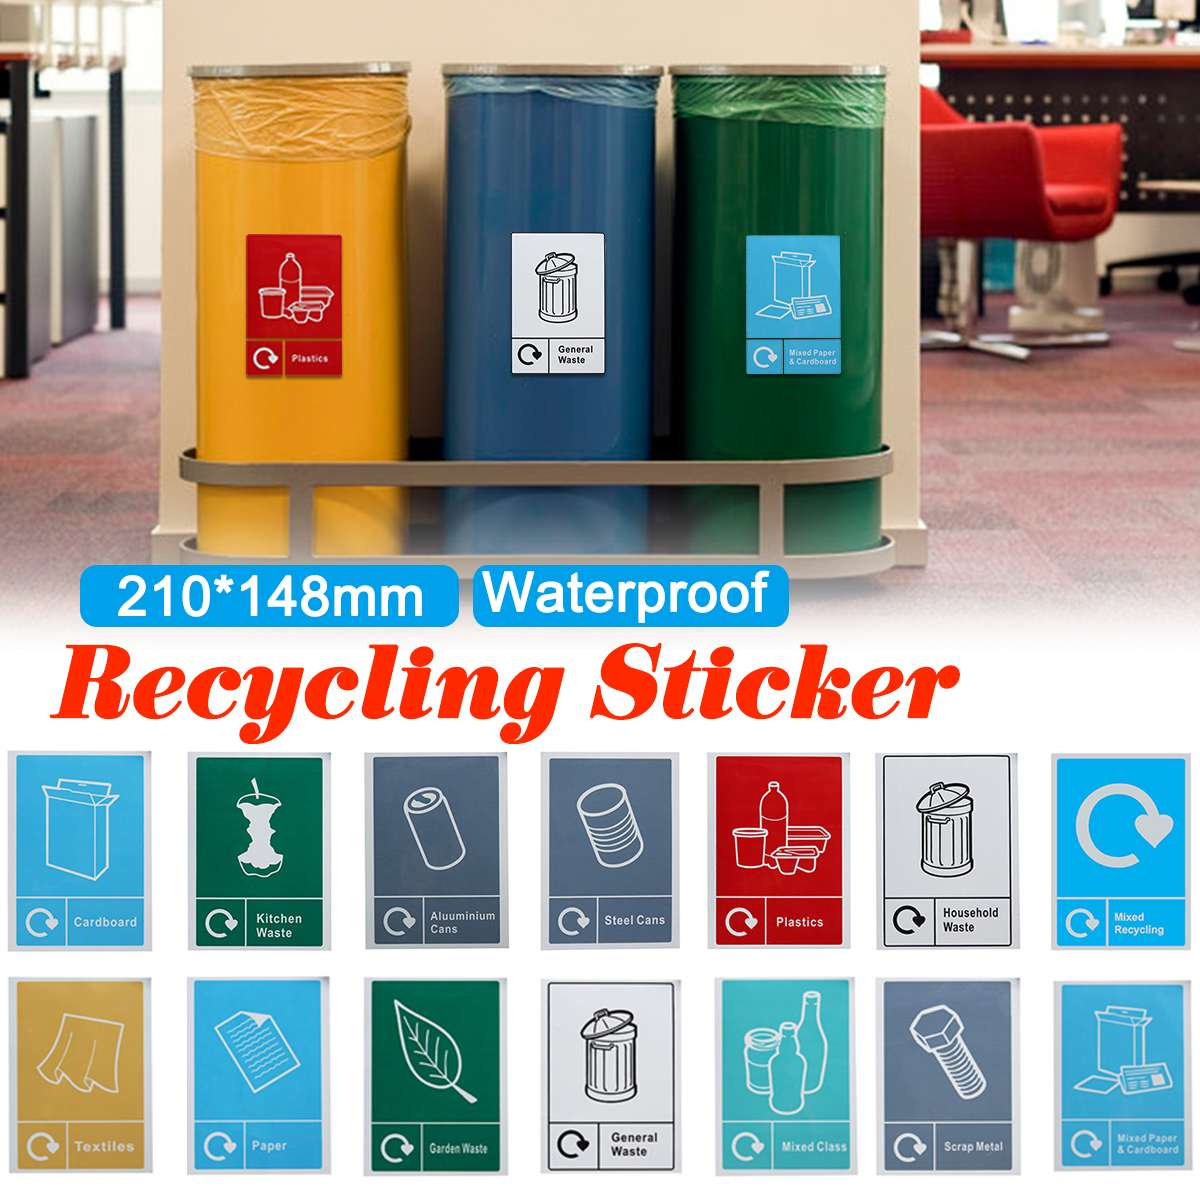 Trash Bin Stickers Classification Sign Recycle Bin Recycling Sticker Waste Signage Sign Waterproof General Waste Logo Garbage